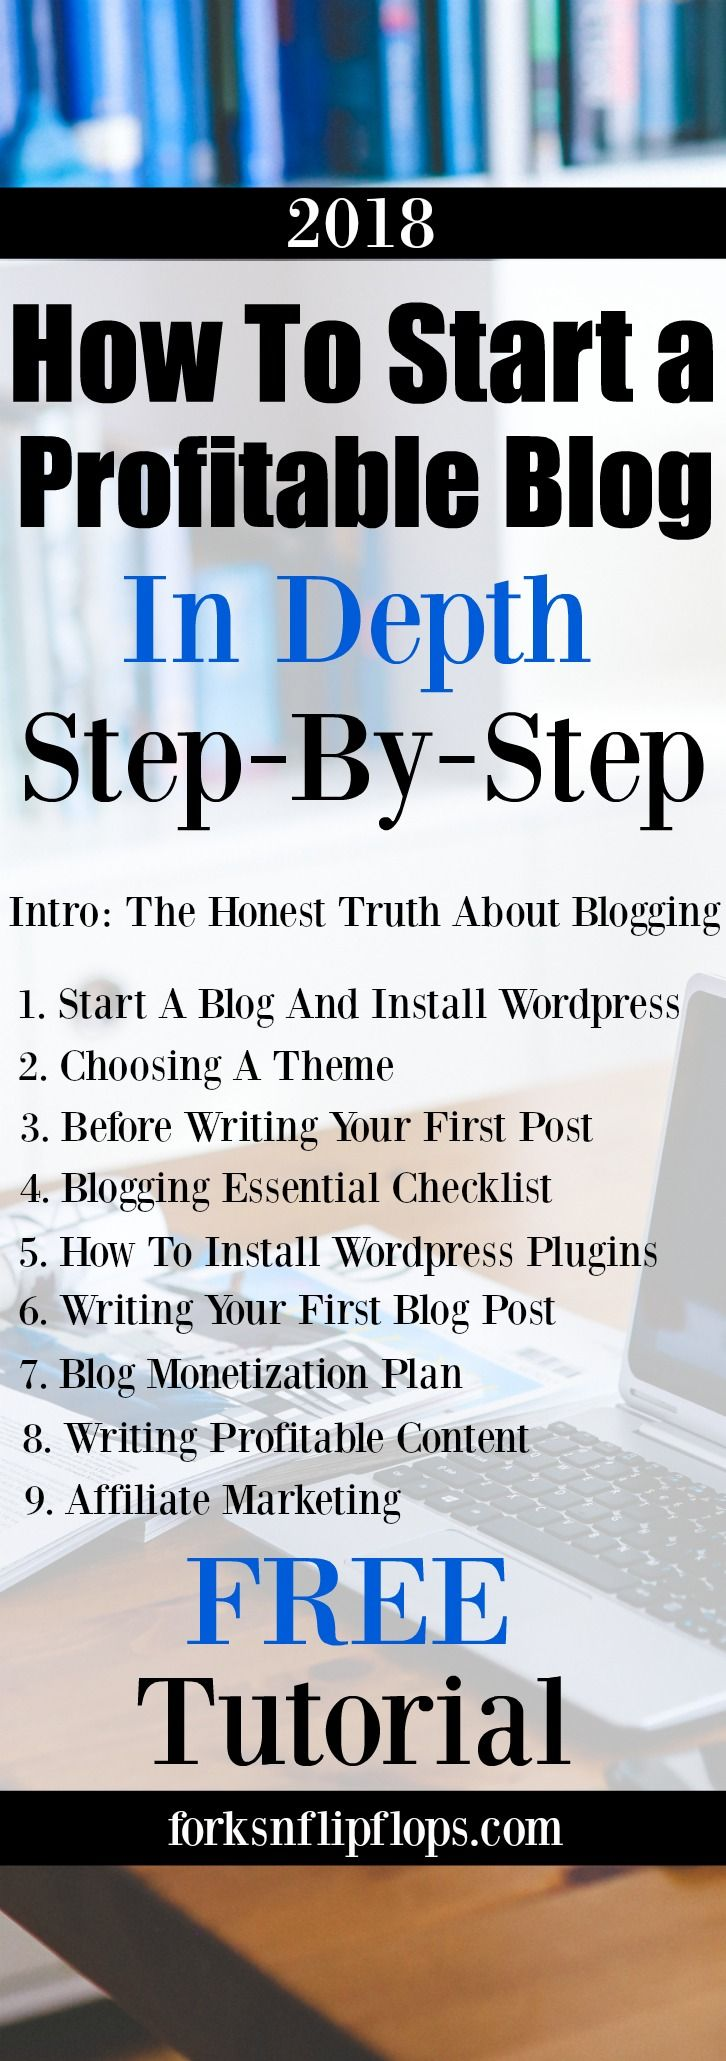 Start the new year starting a blog. How to start a blog and make money from home with this FREE Tutorial! Follow along with the step by step lessons to setup a blog in Wordpress. Having a solid blogging framework is crucial to have blogging income. My Blog Income Report included.